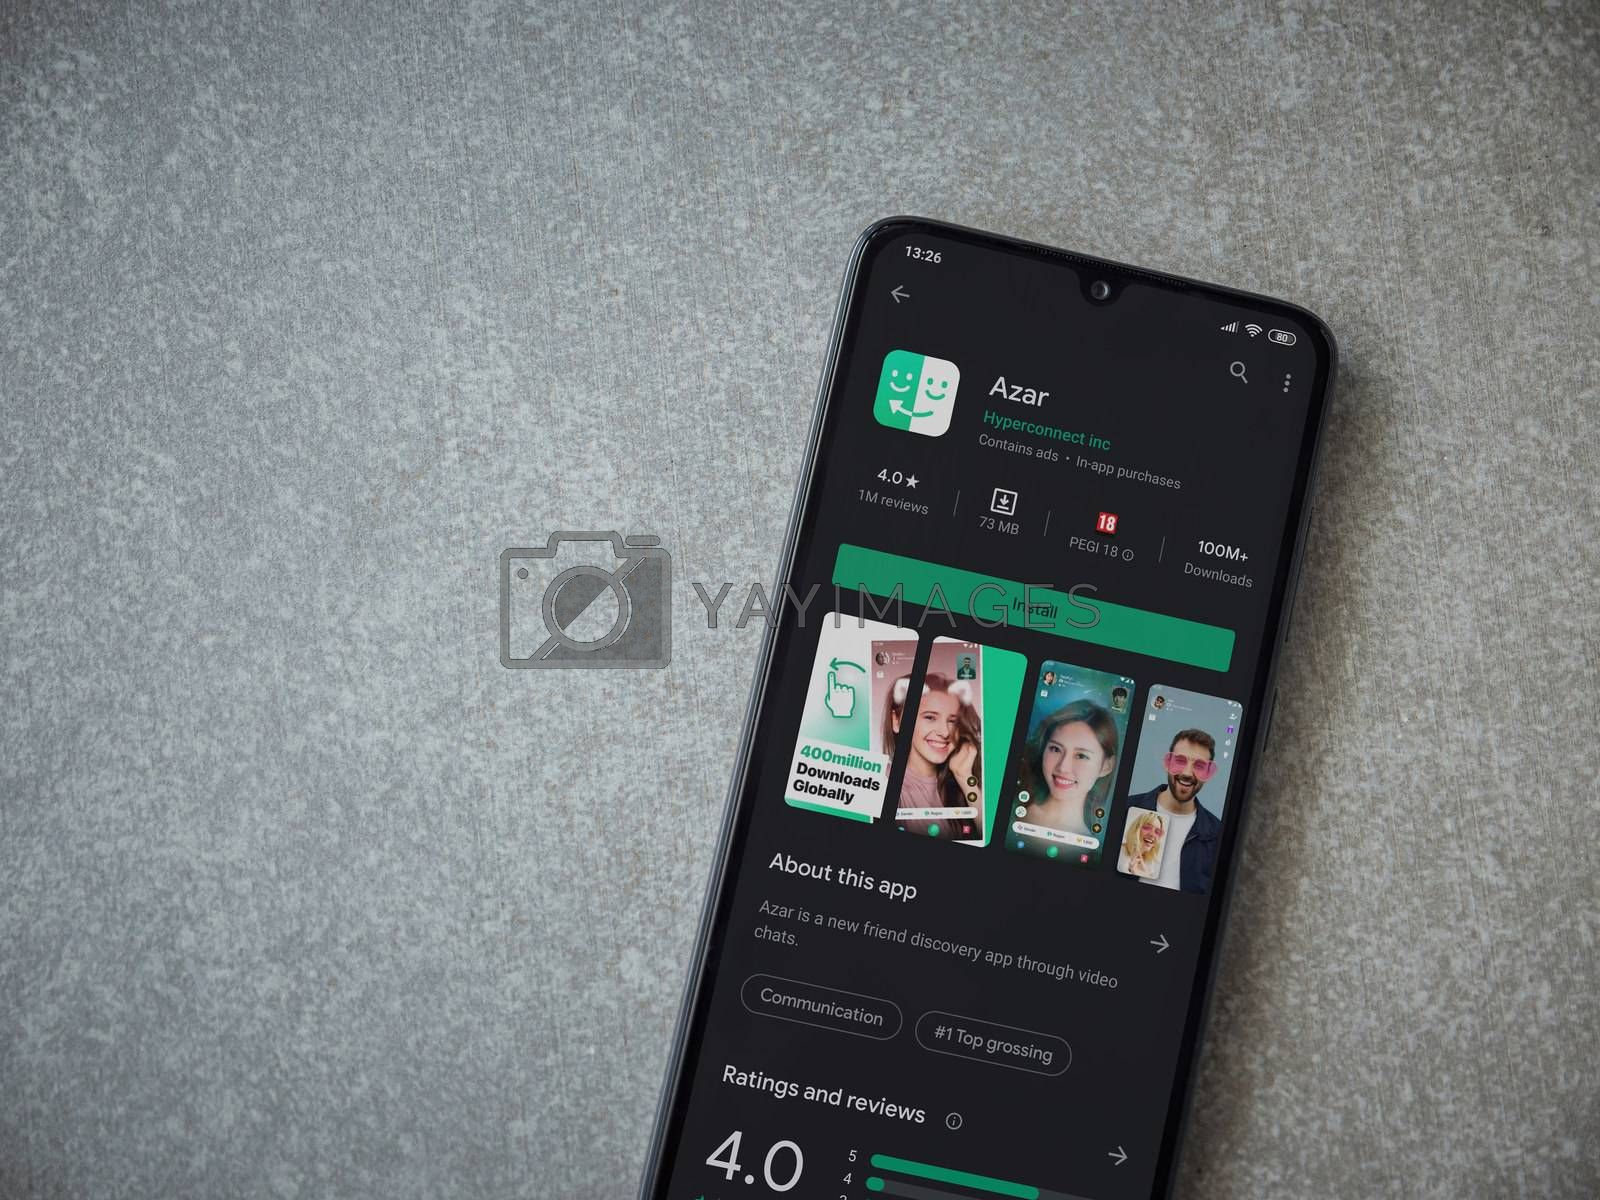 Lod, Israel - July 8, 2020: Azar app play store page on the display of a black mobile smartphone on ceramic stone background. Top view flat lay with copy space.